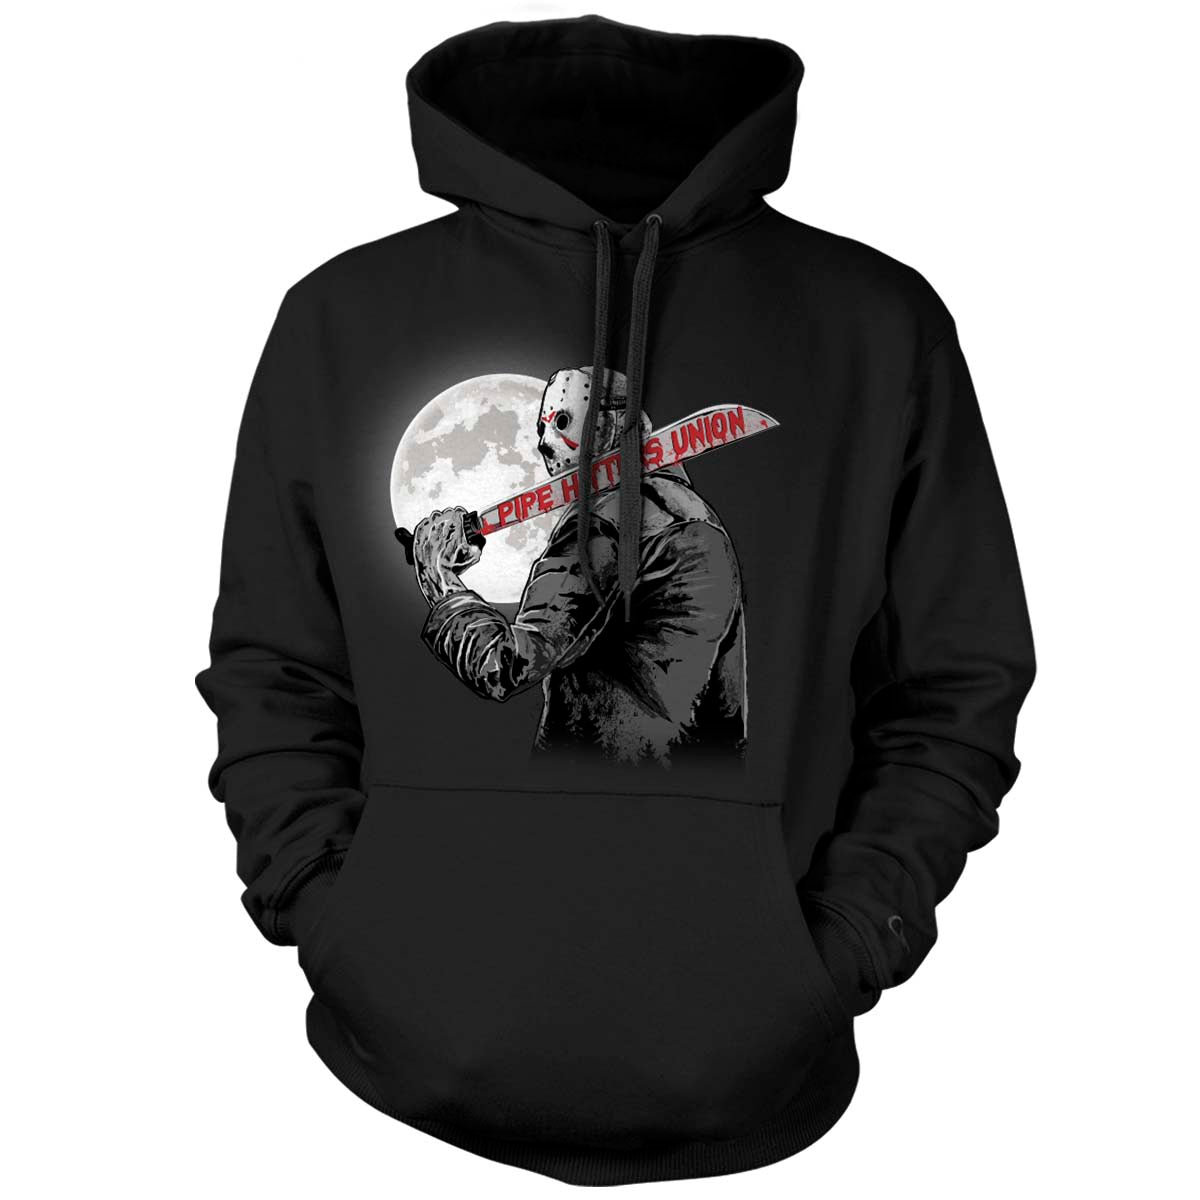 Crystal Lake Hitter - Hoodie - Black - Hoodies - Pipe Hitters Union